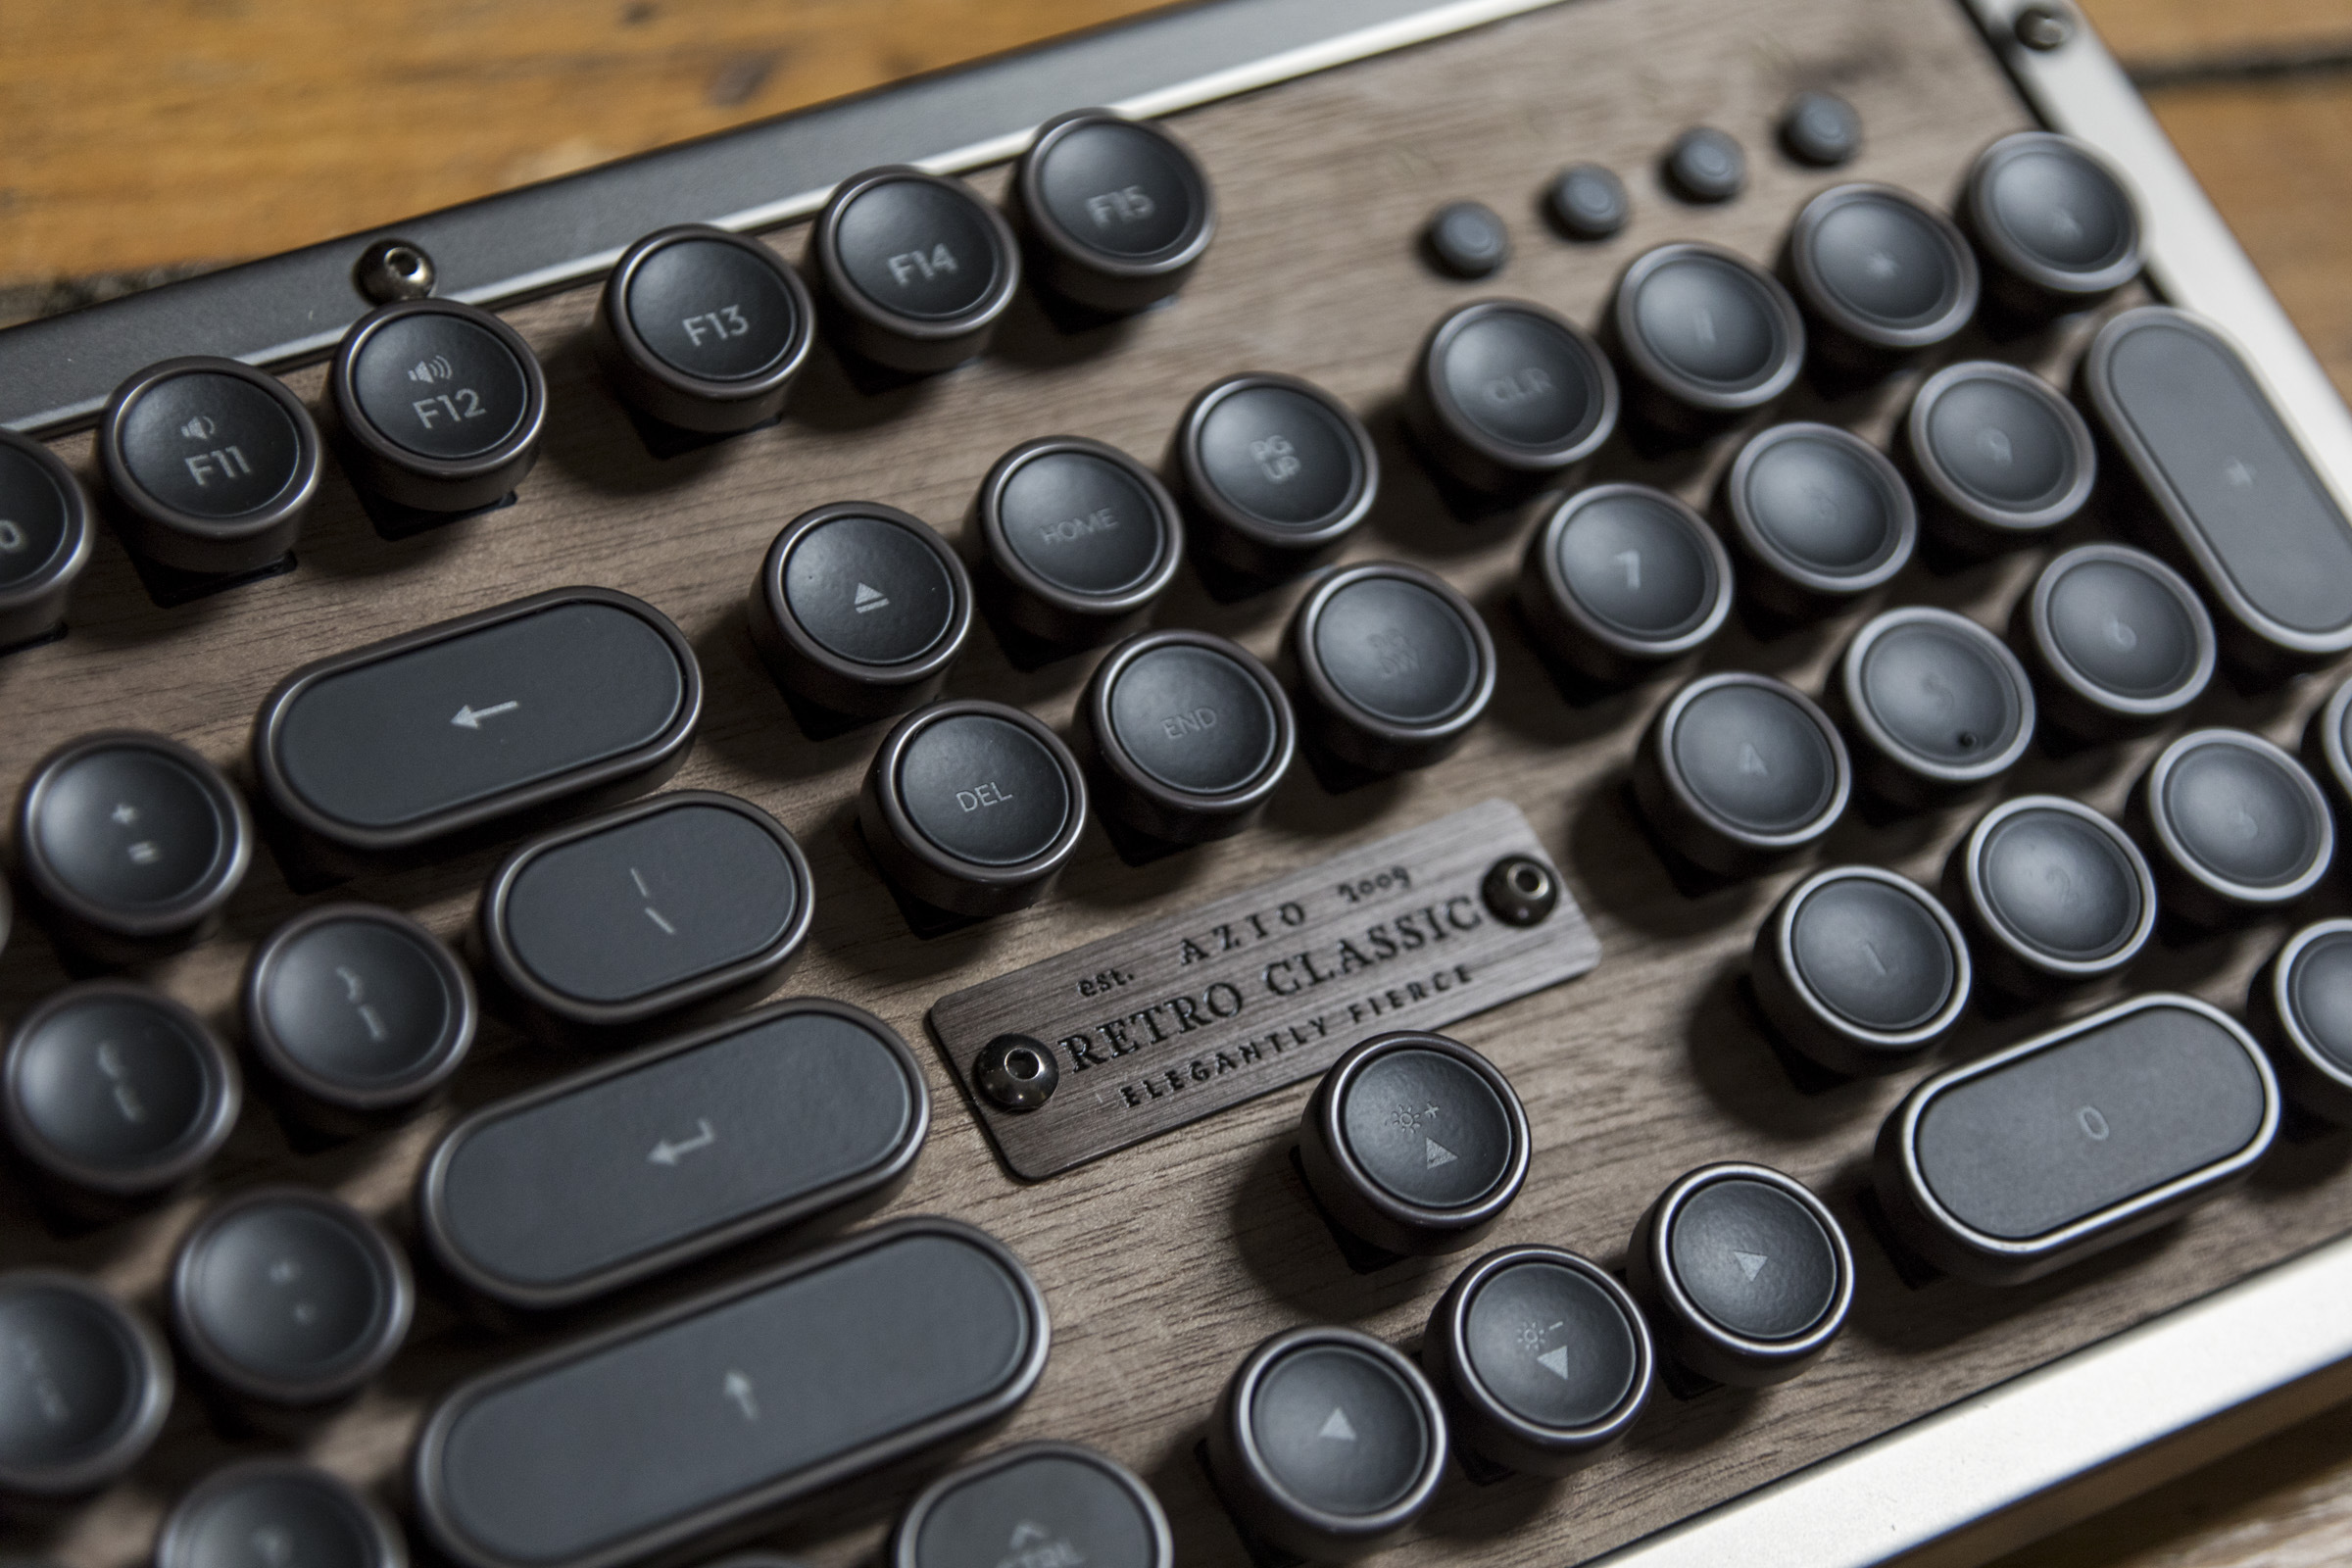 1518209330 420 the retro classic azio bluetooth keyboard inspired by the typewriter is a luxury treat - The retro-classic Azio Bluetooth keyboard inspired by the typewriter is a luxury treat